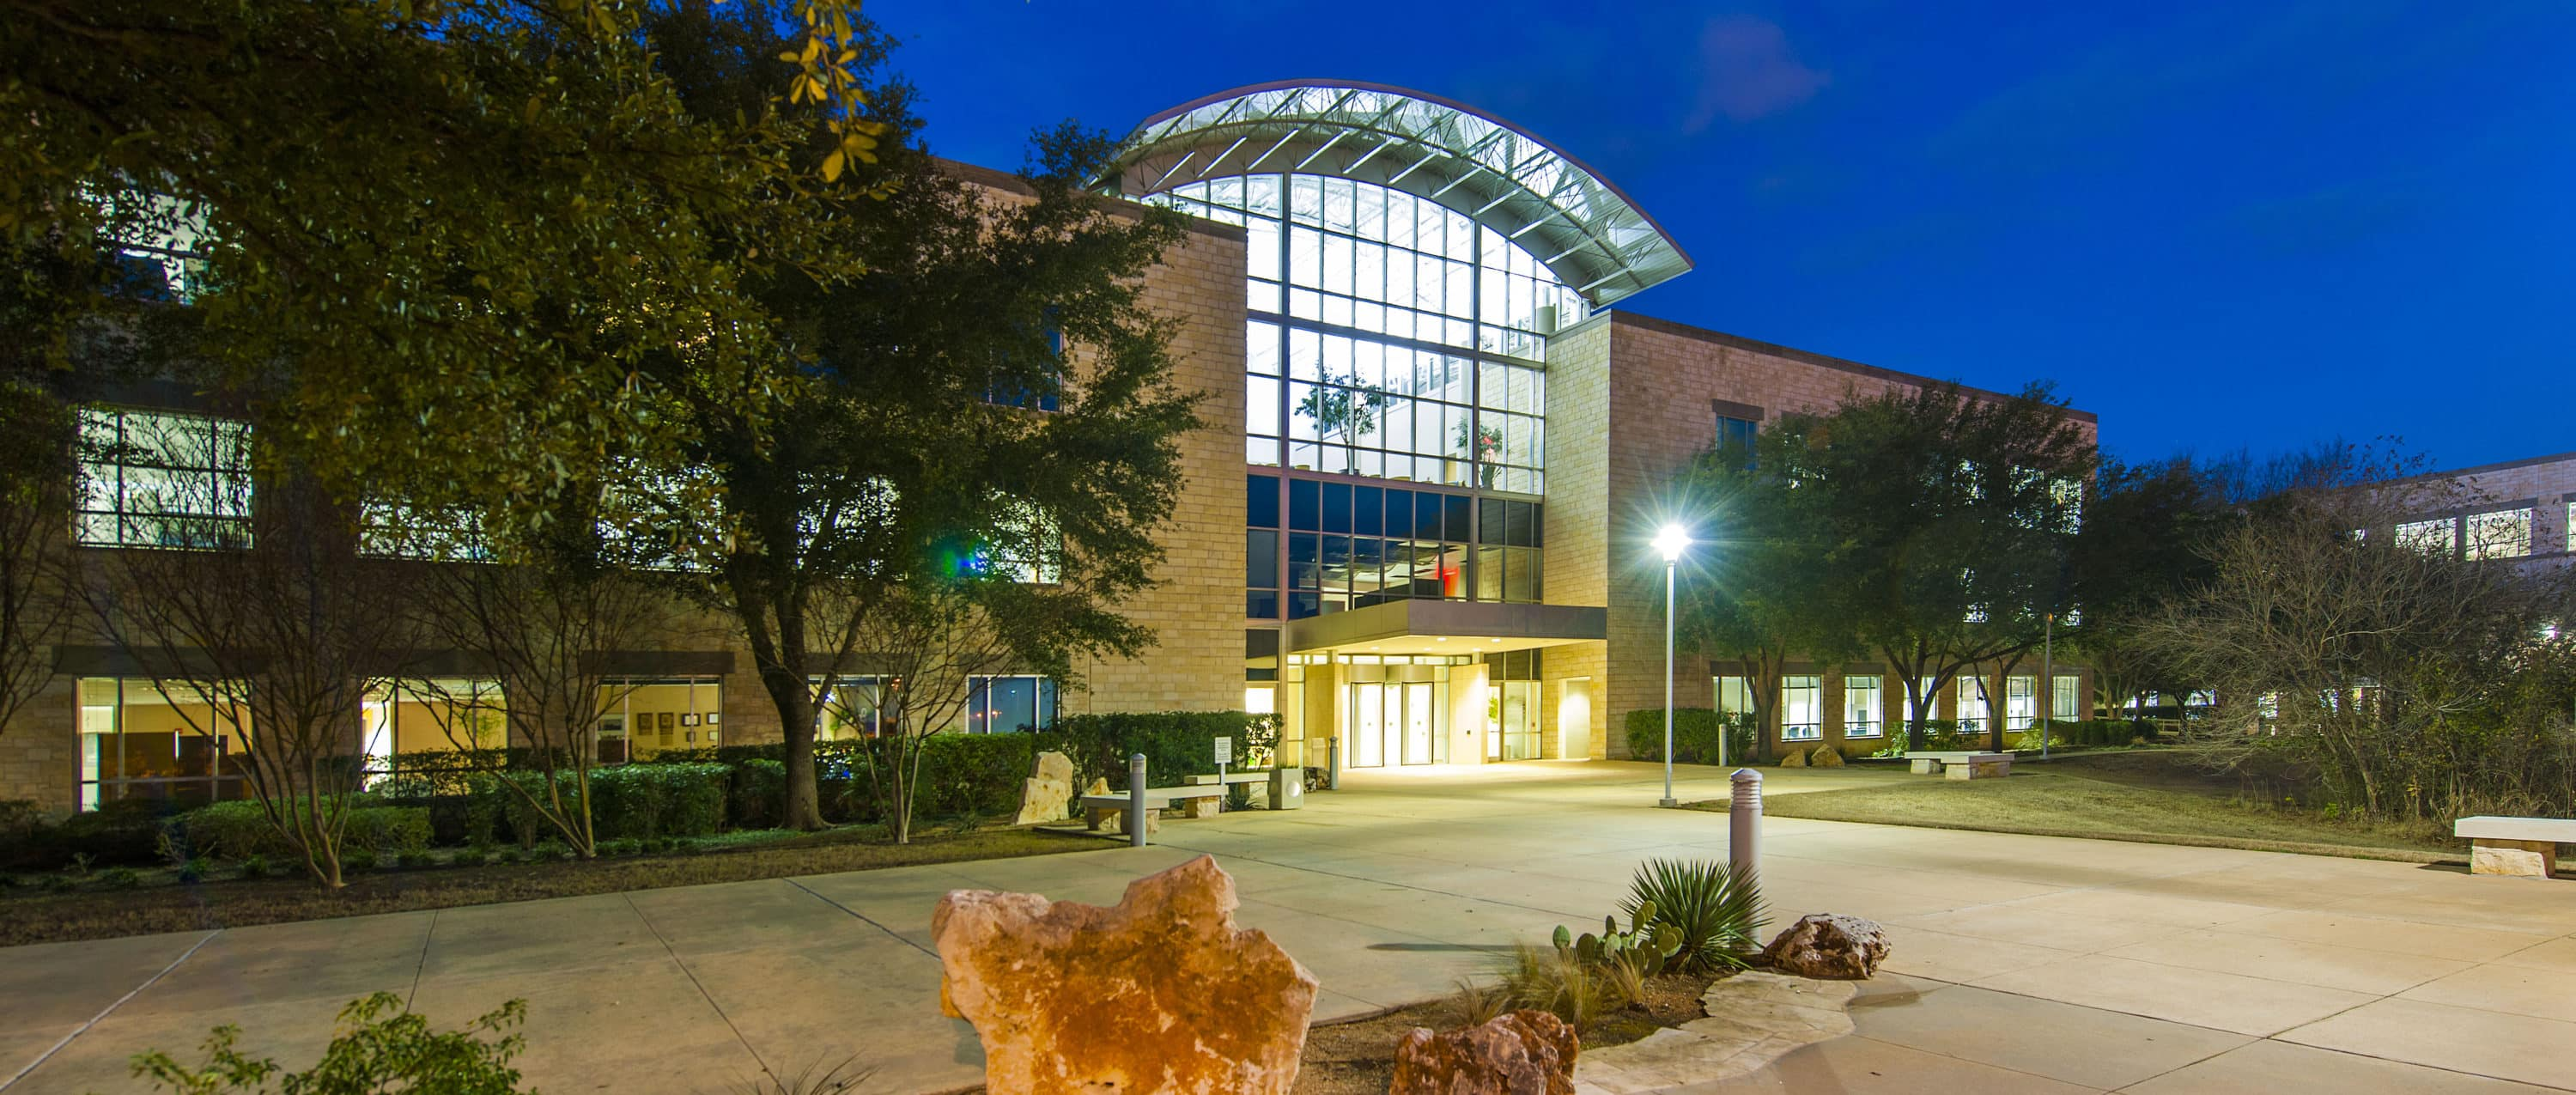 7700 Parmer Office Campus in northwest Austin, Texas